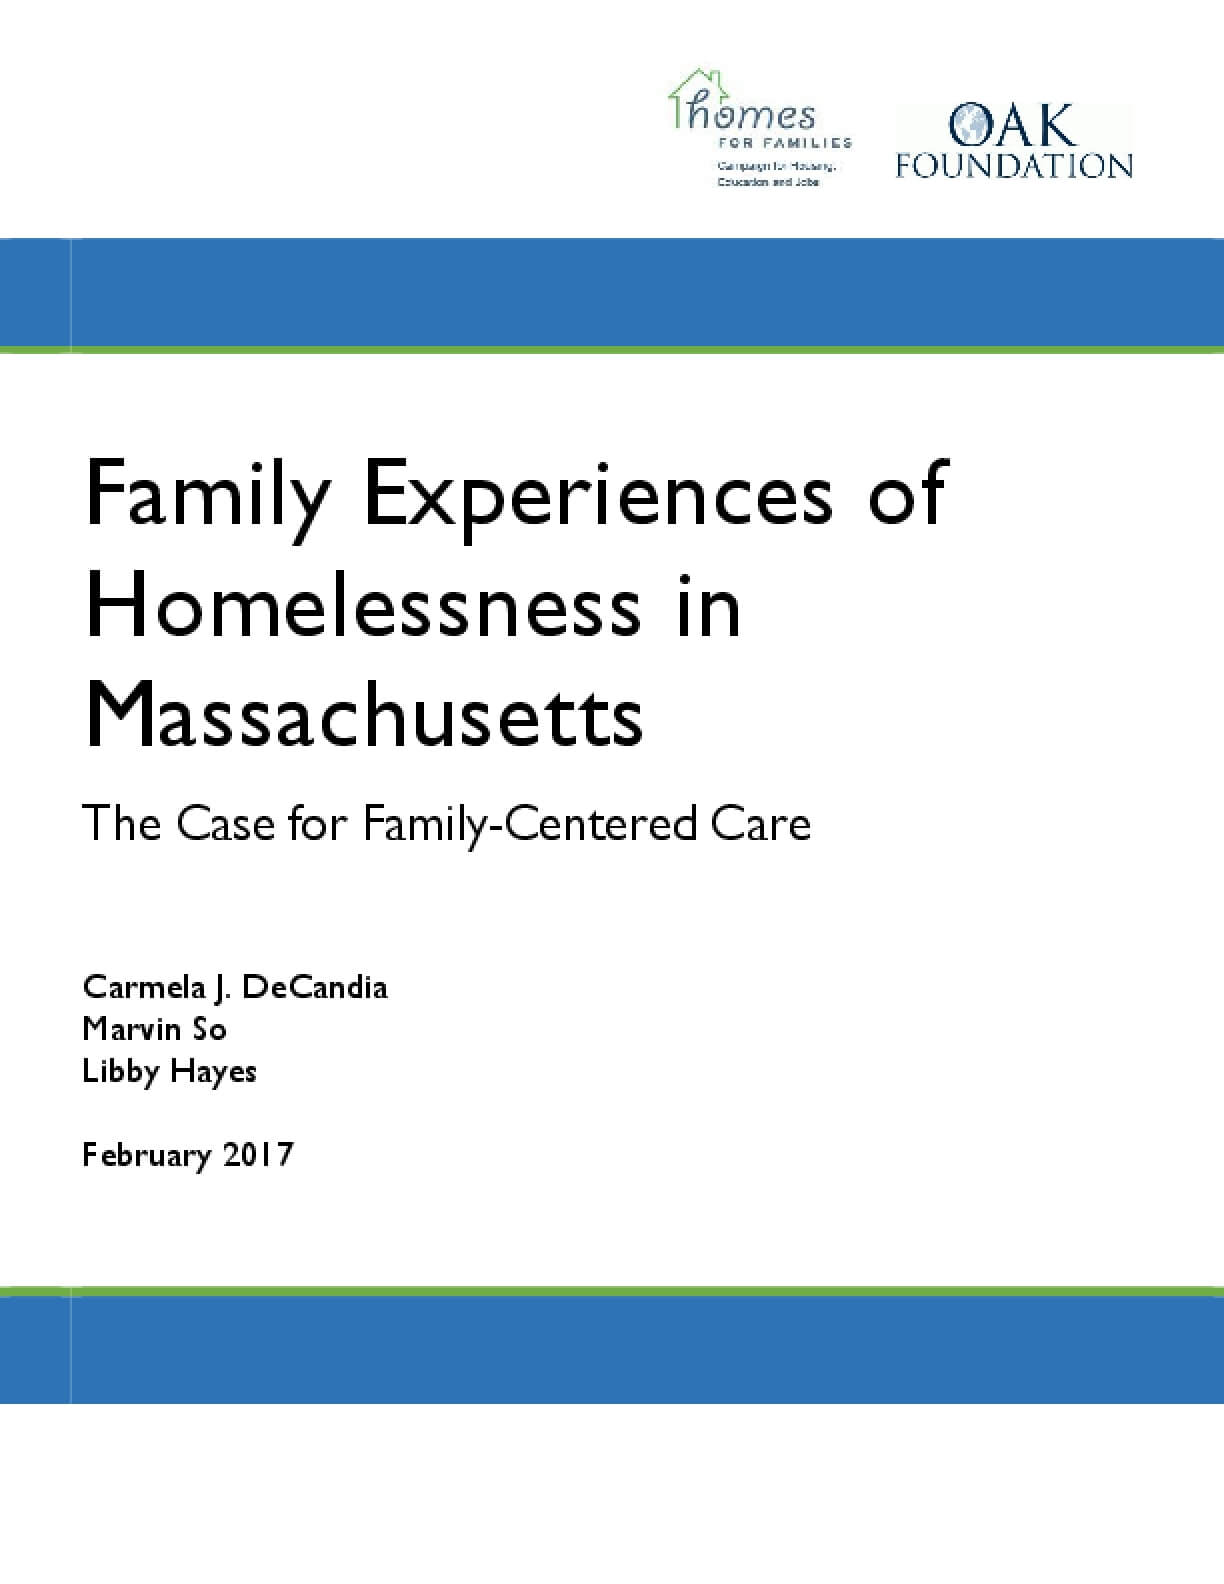 Family Experiences of Homelessness in Massachusetts: The Case for Family-Centered Care